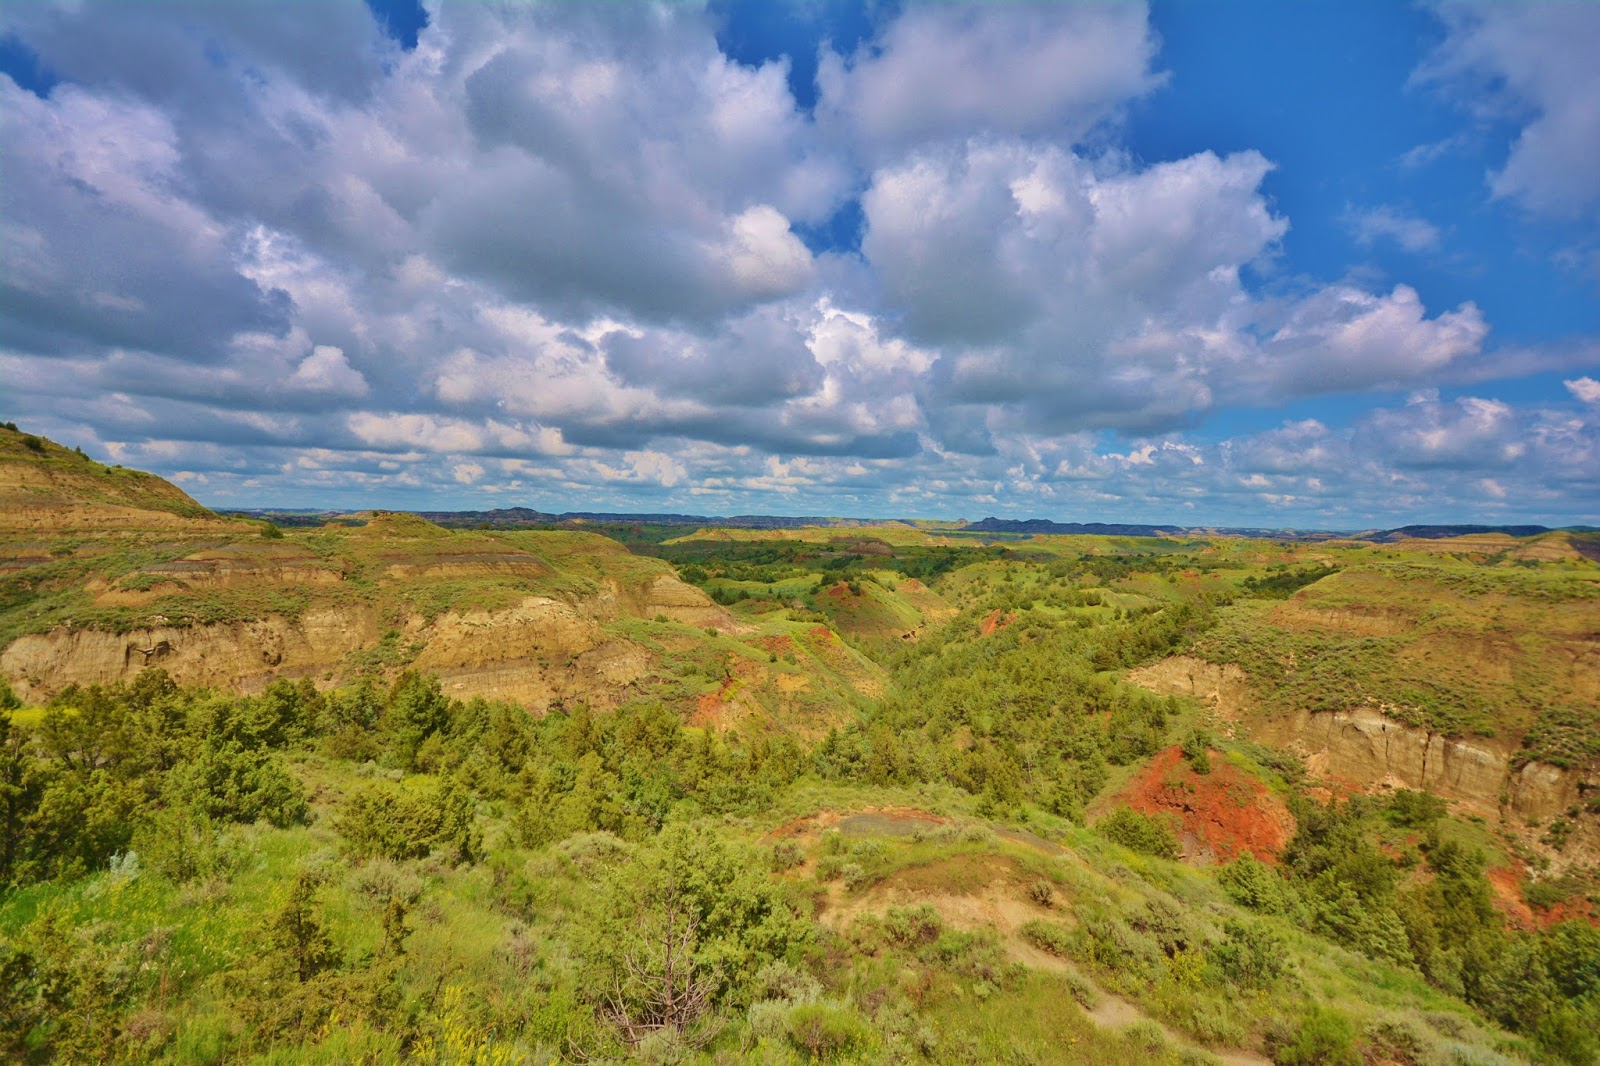 Take a scenic drive through the Badlands of North Dakota in Theodore Roosevelt National Park. #Travel #FamilyTravel